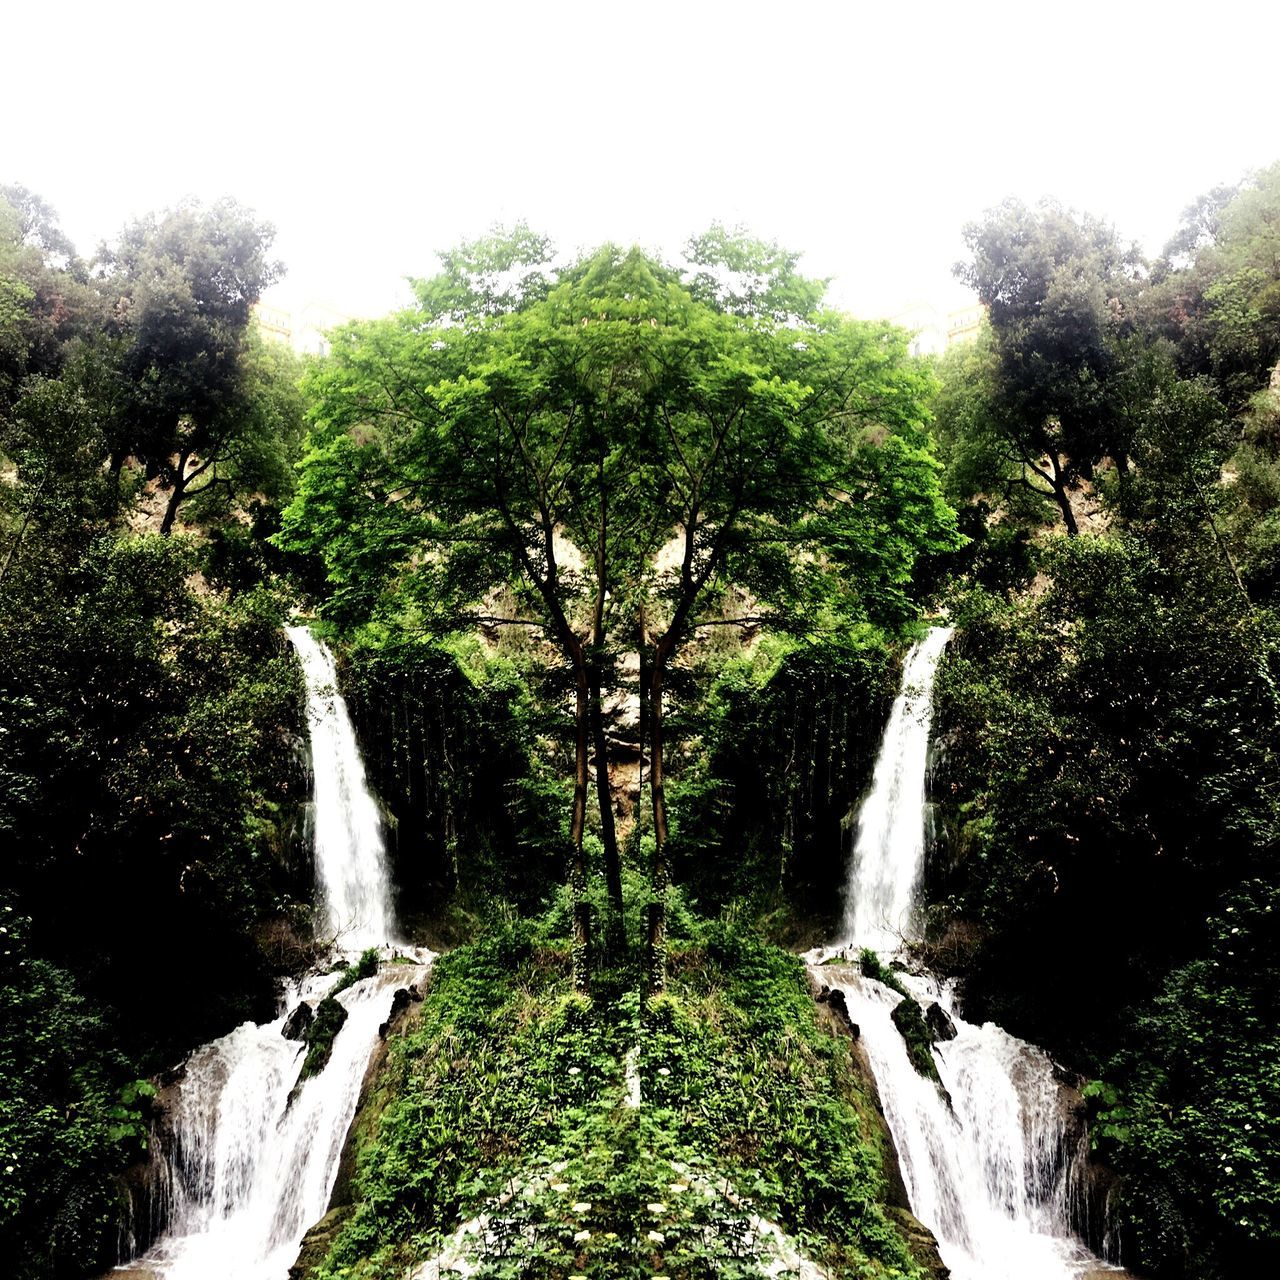 Waterfall Motion Tree Scenics Nature Beauty In Nature Water Long Exposure Forest No People Blurred Motion Outdoors Day Power In Nature Sky The Great Outdoors - 2017 EyeEm Awards